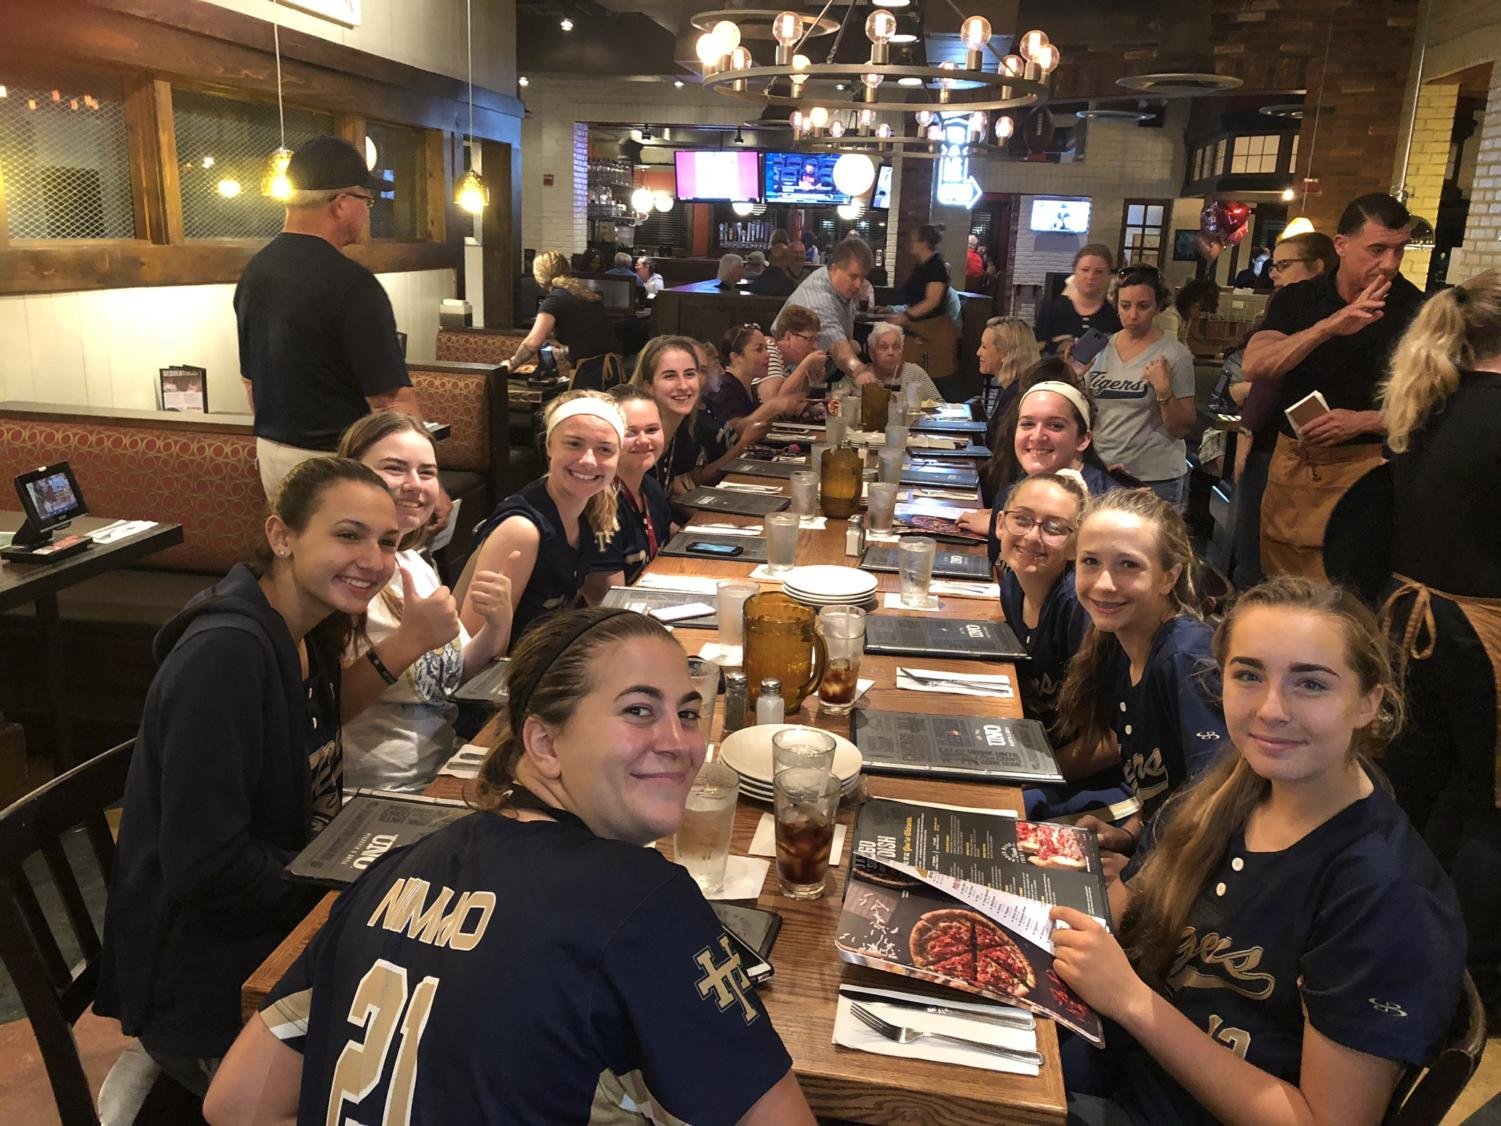 The softball team eats after completing their game.